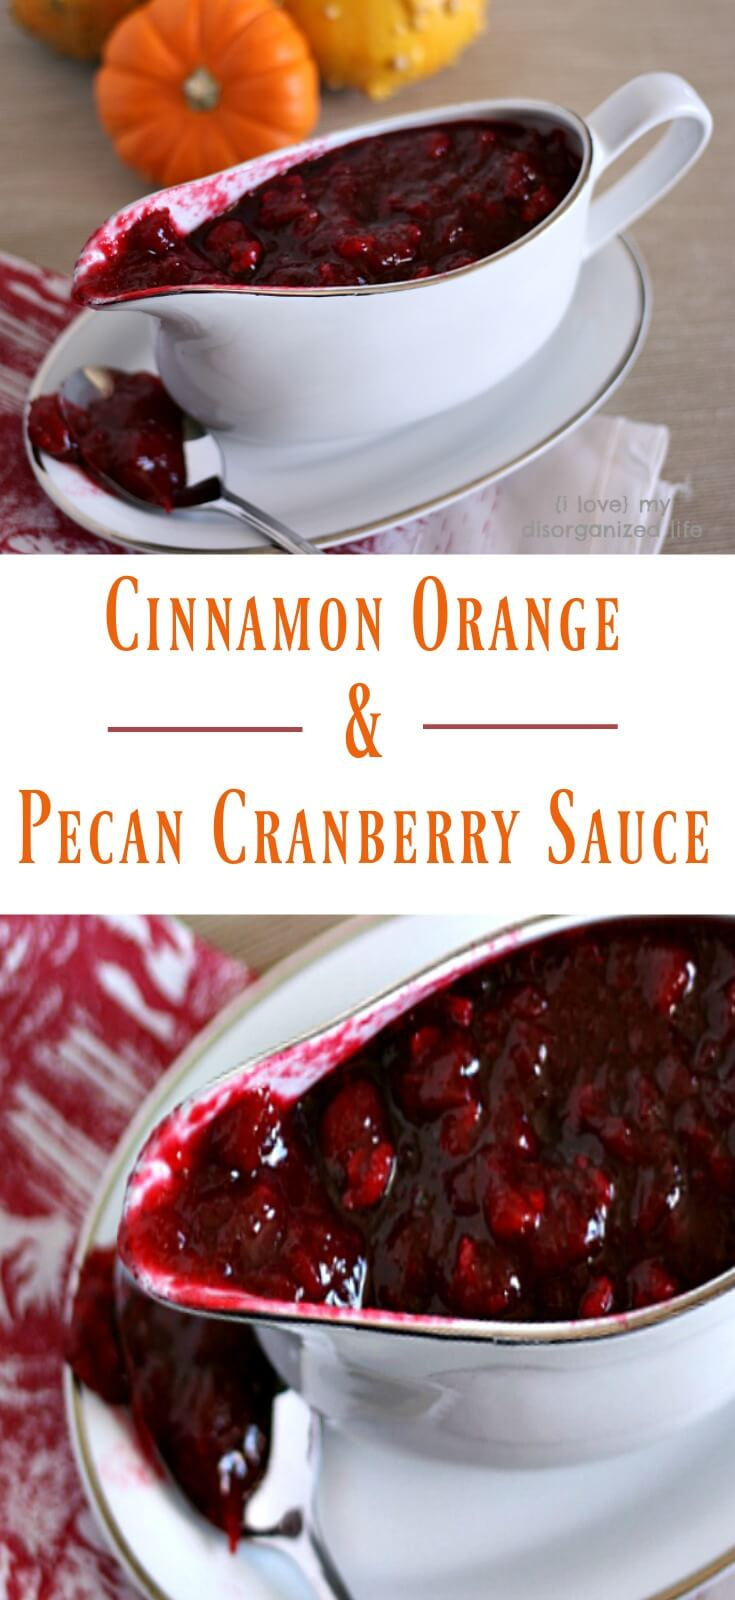 Make this 10-minute homemade cranberry sauce for Thanksgiving with pecans, orange, and cinnamon. You family with thank you I promise.